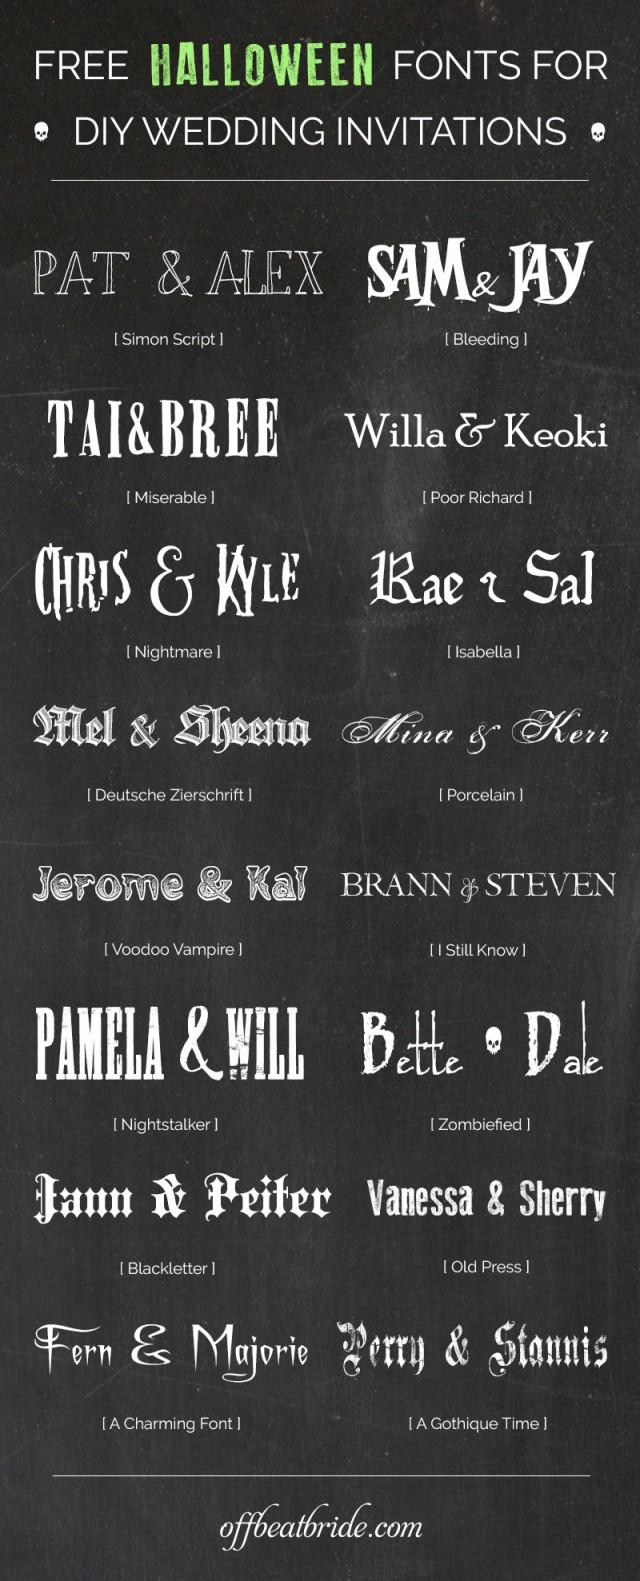 16 bewitching free halloween fonts for scarily good diy